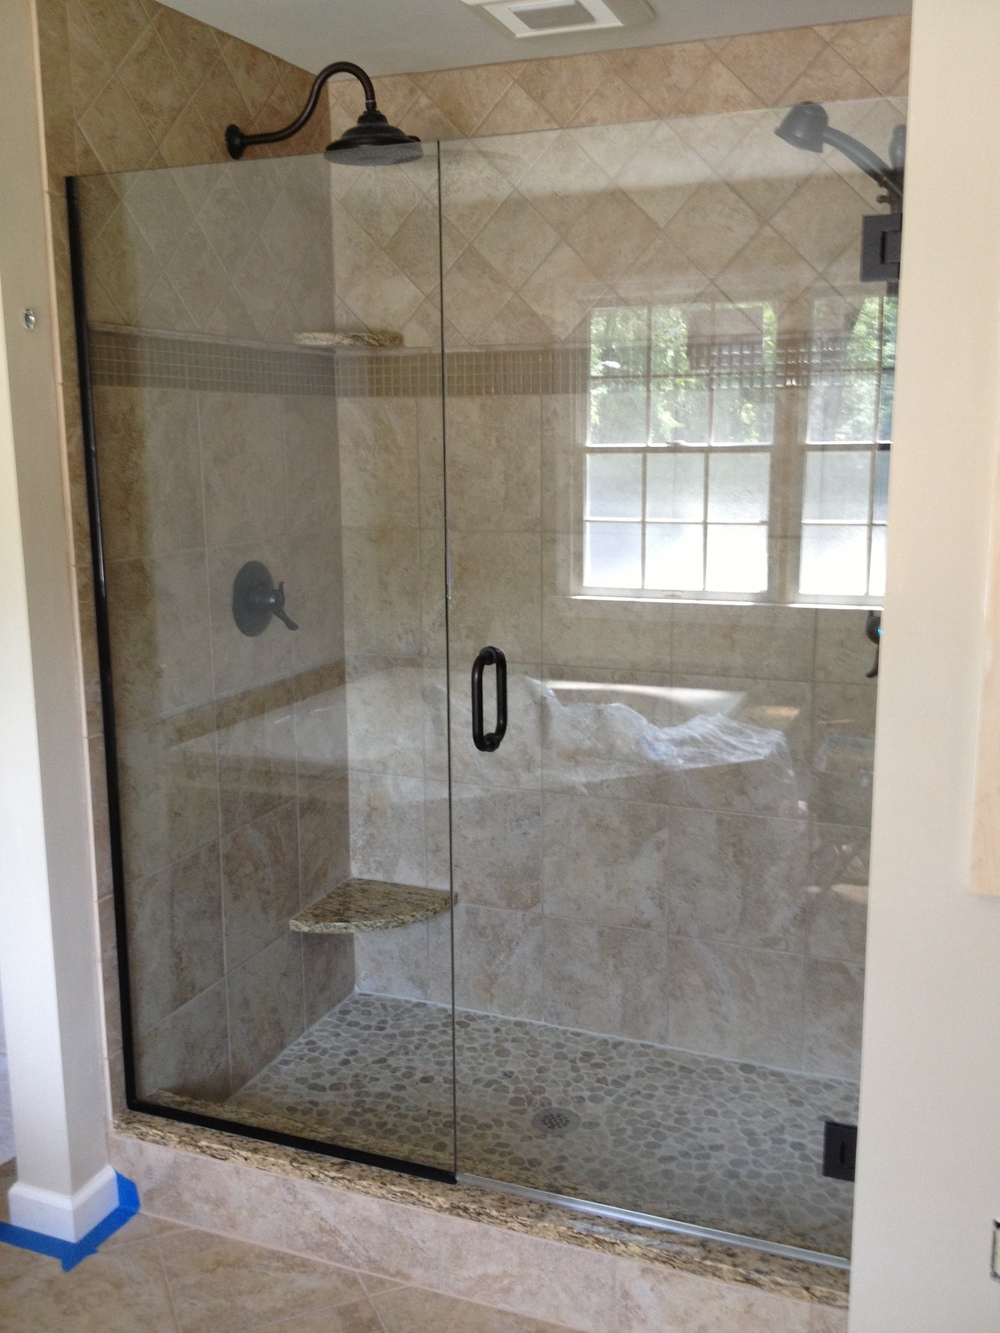 Bathroom shower doors frameless - Img_0657 Jpg